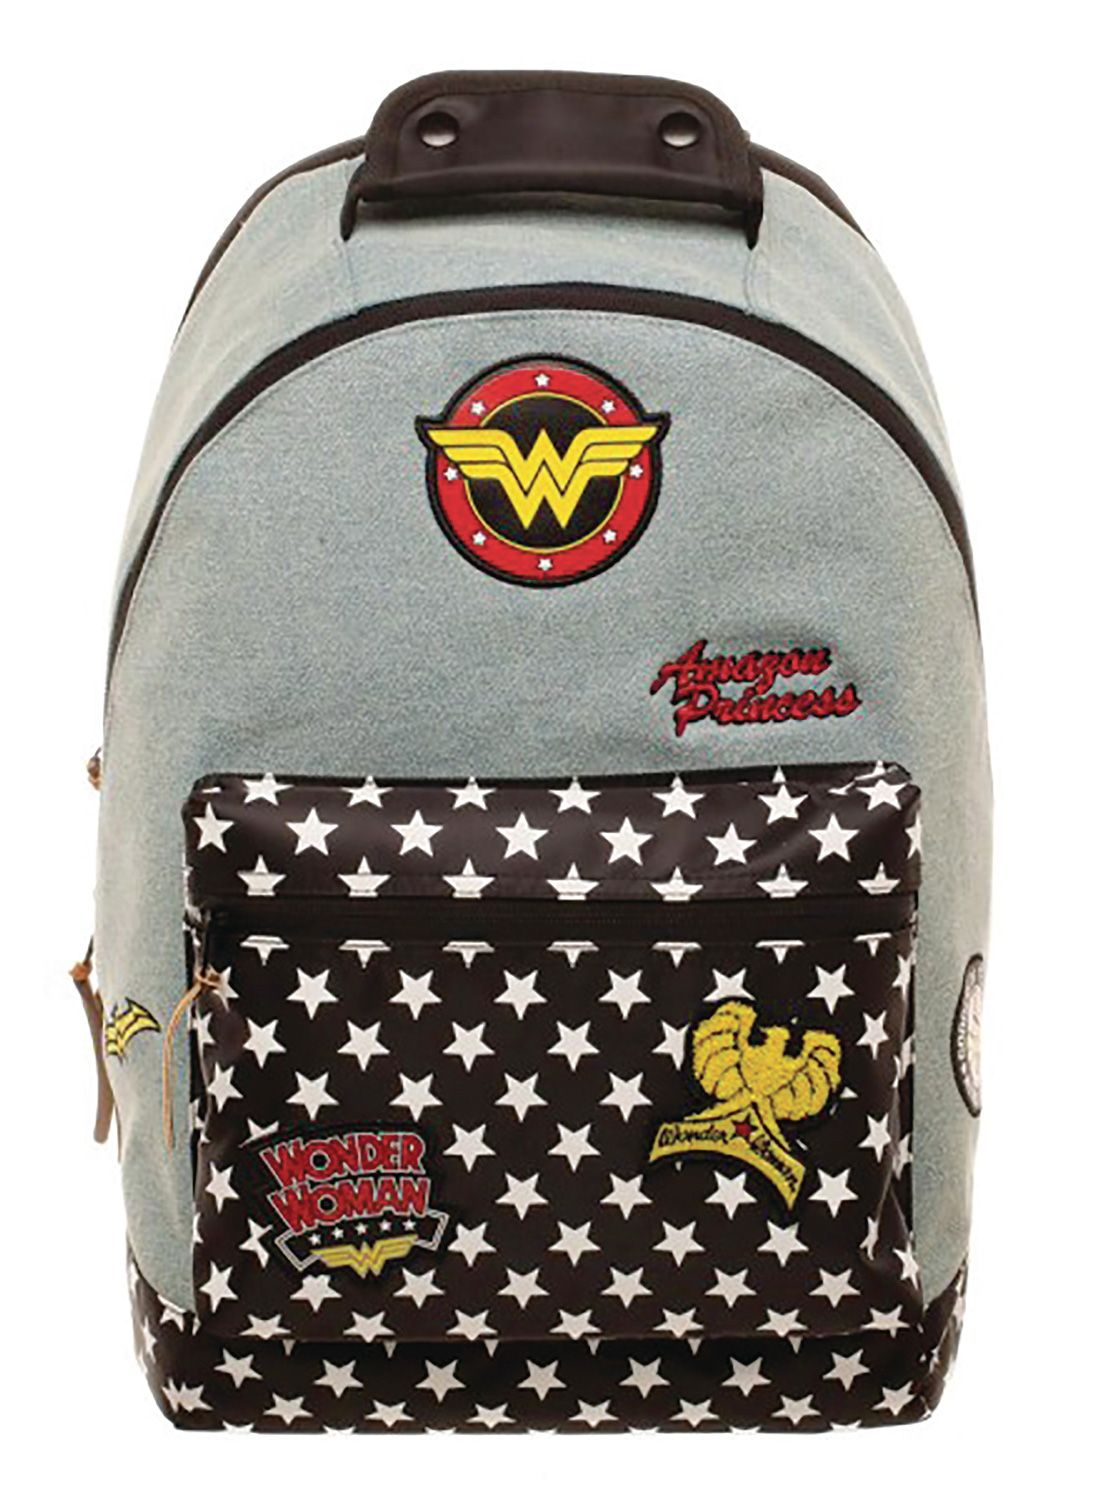 Mochila-Mulher-Maravilha-Wonder-Woman-Denim-Backpack-with-Patches-02